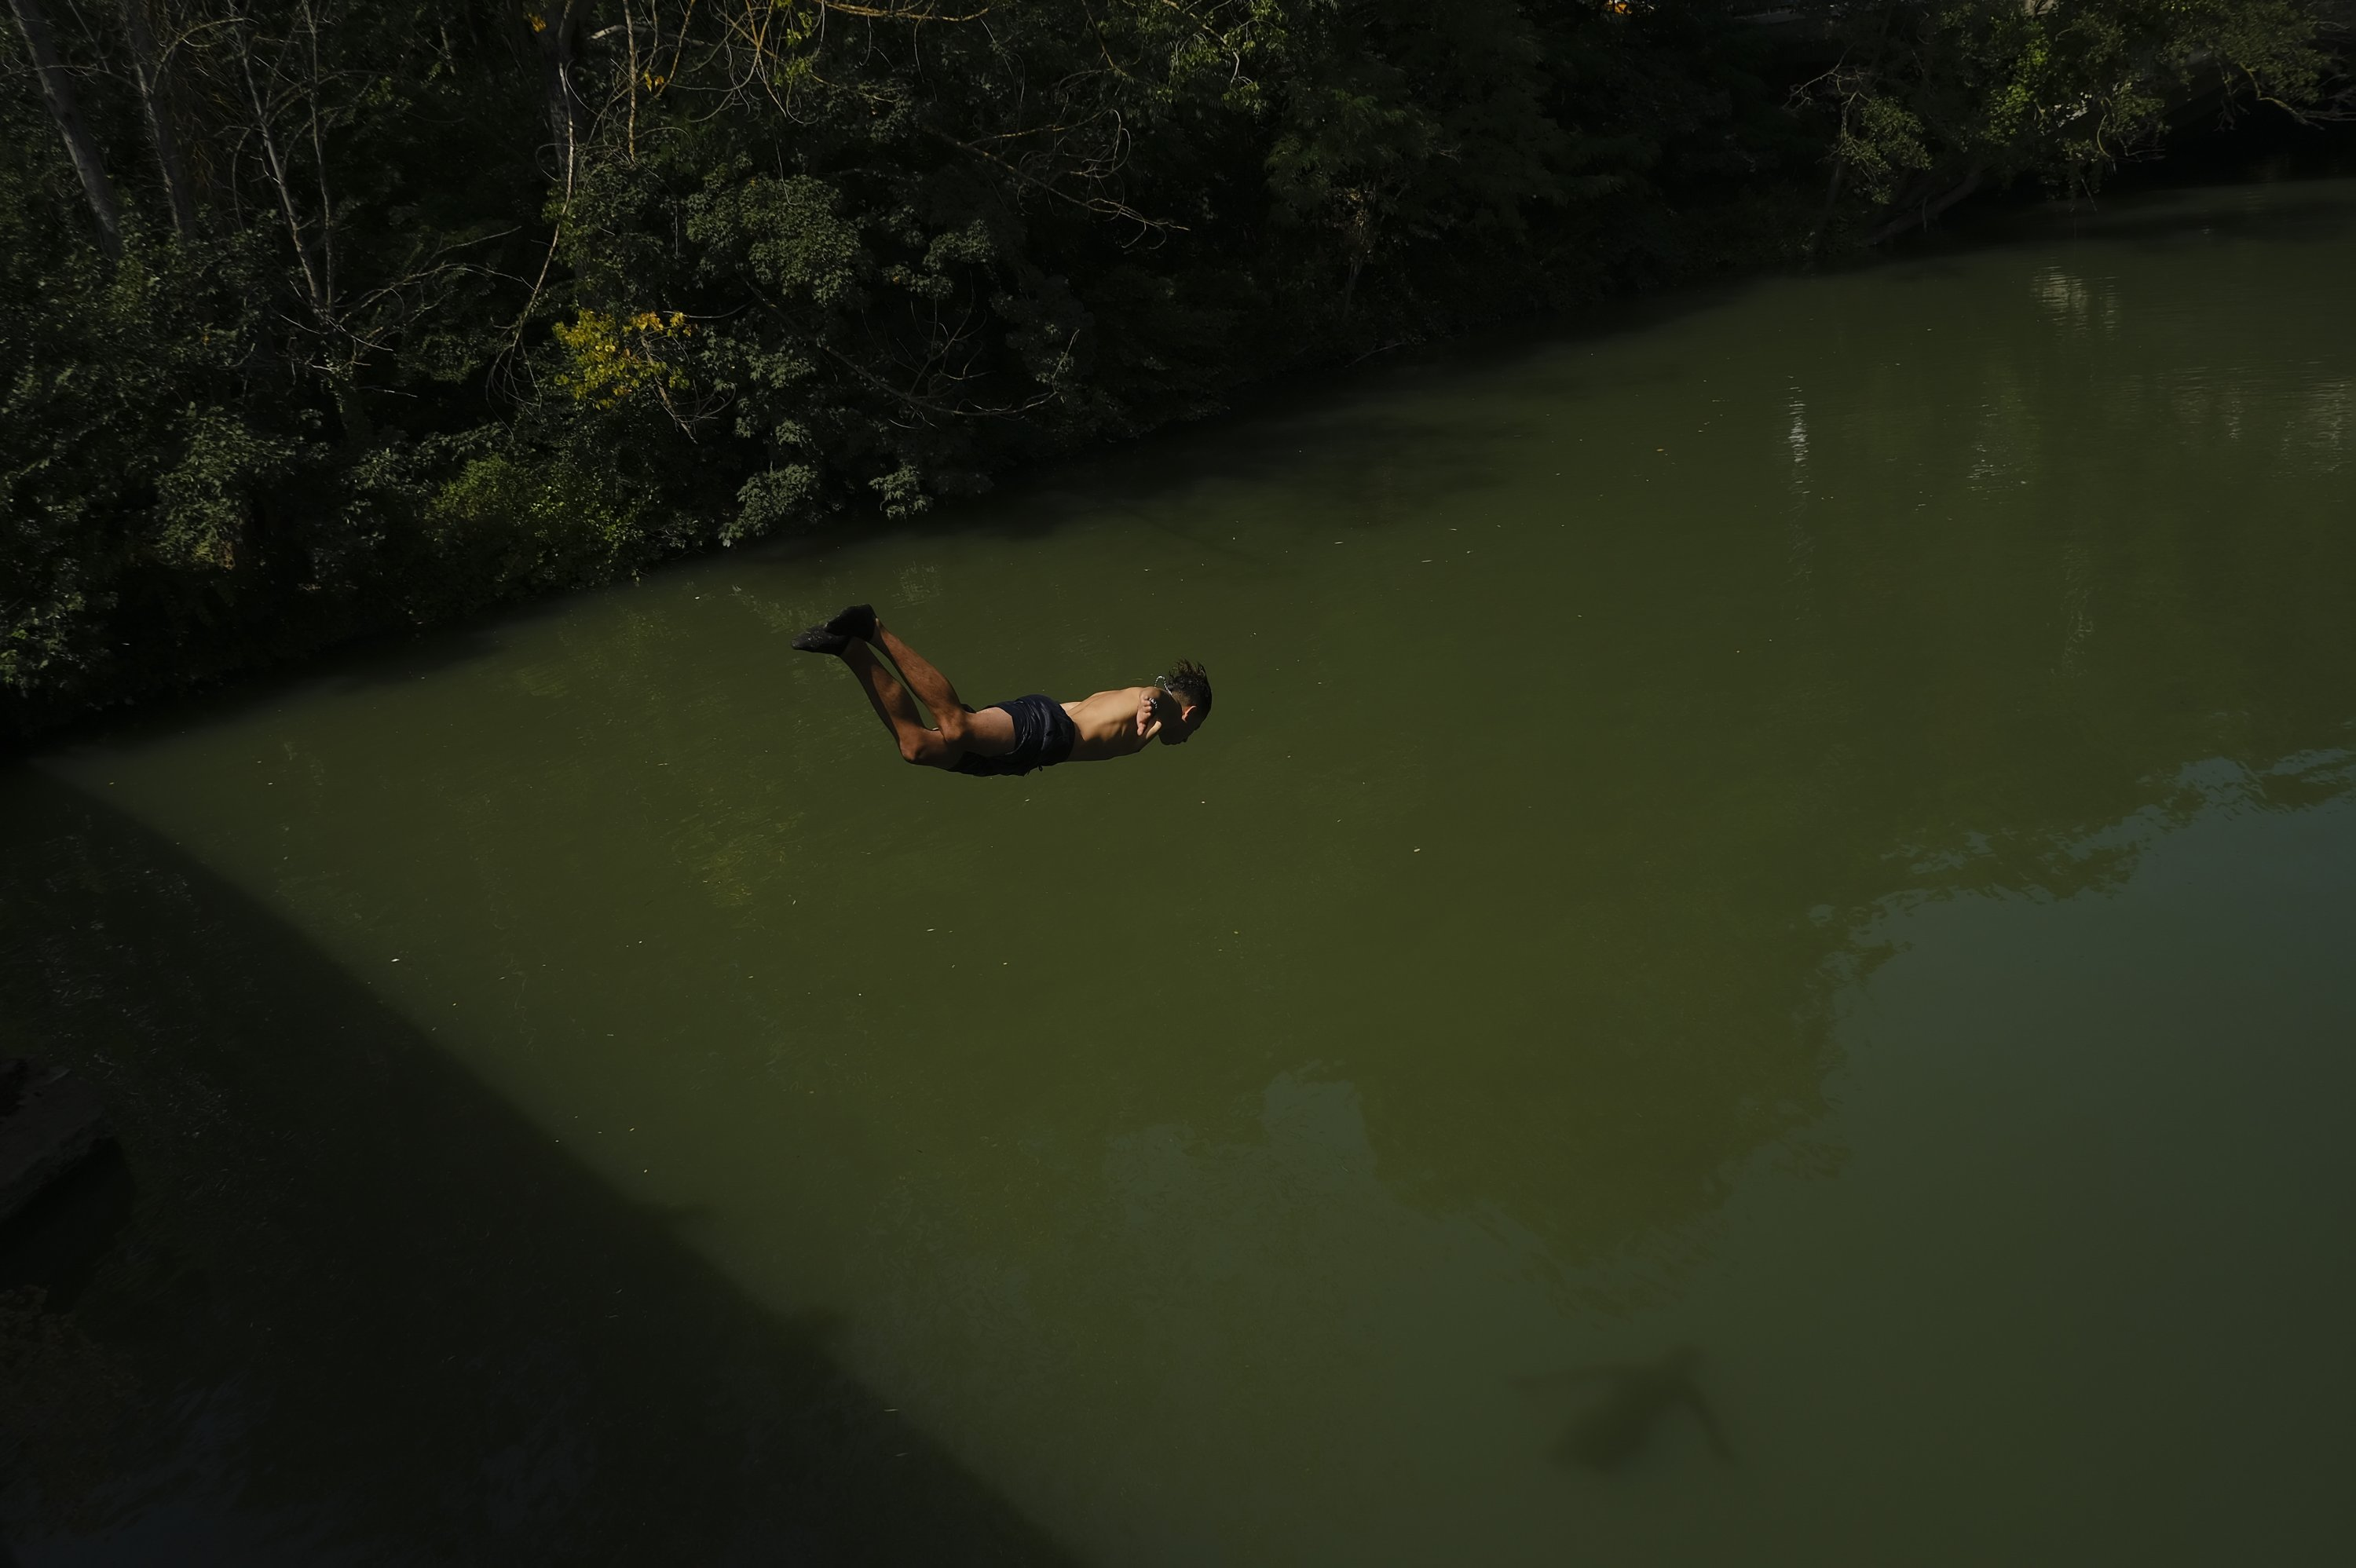 A teenager dives into water to cool off in the Arga River during a heatwave in Pamplona, northern Spain, Aug. 13, 2021. (AP Photo)